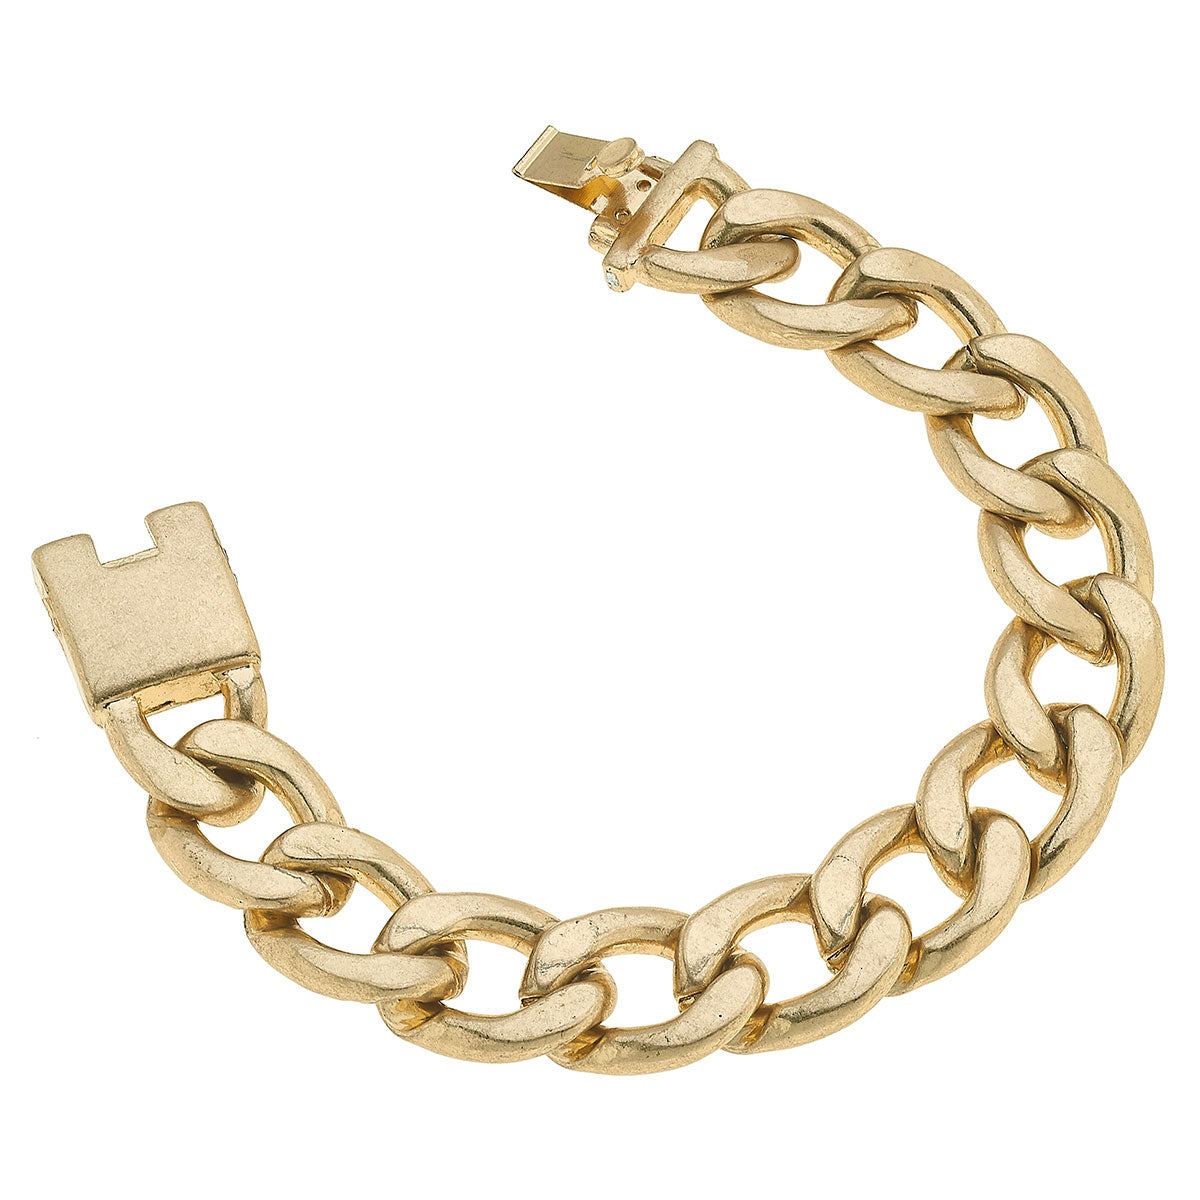 Yara Chunky Curb Chain Bracelet in Worn Gold